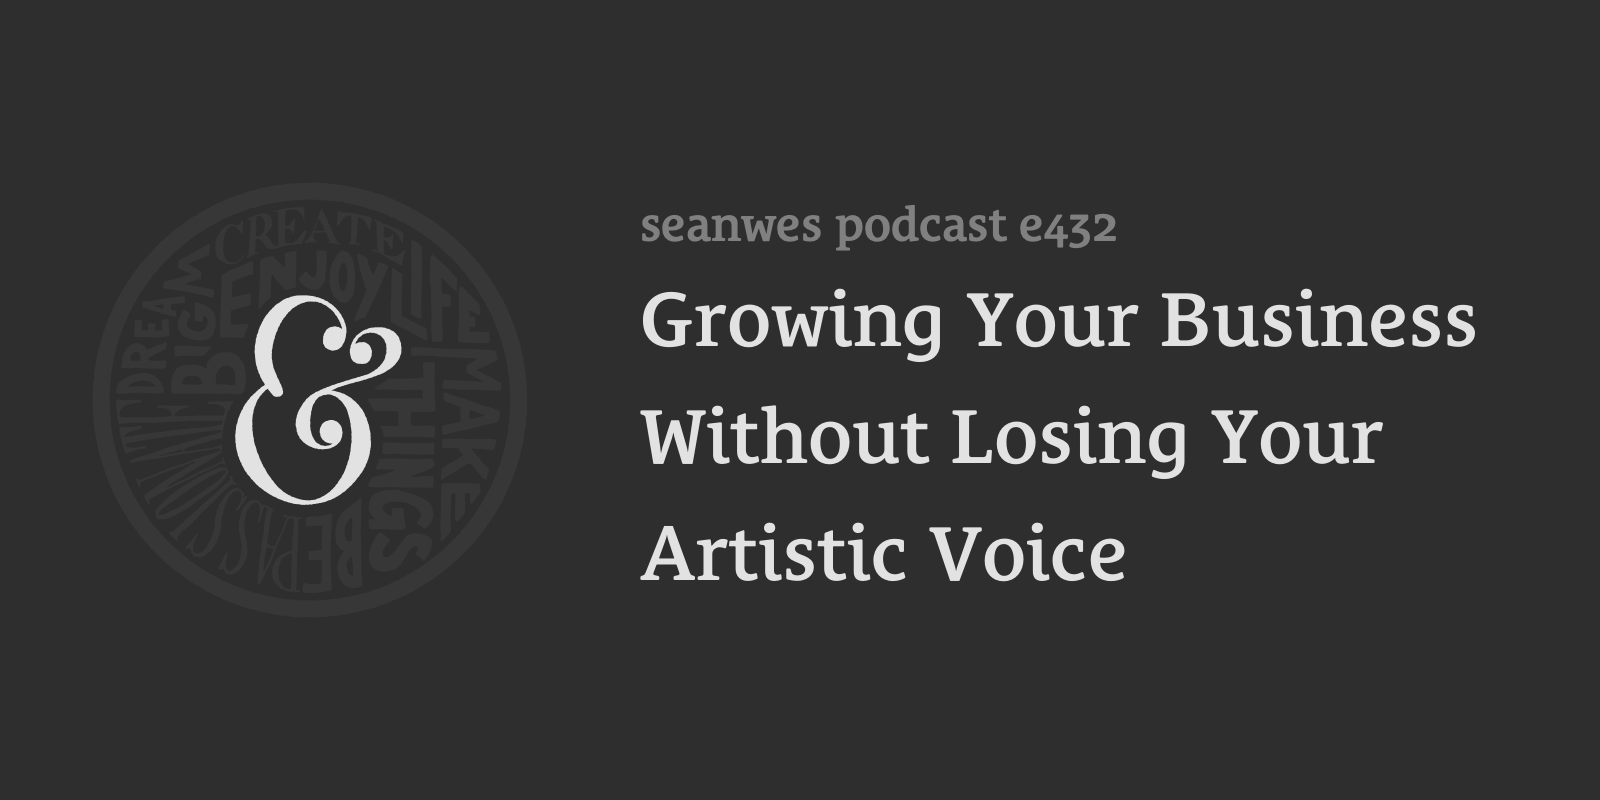 seanwes podcast 432: Growing Your Business Without Losing Your Artistic Voice